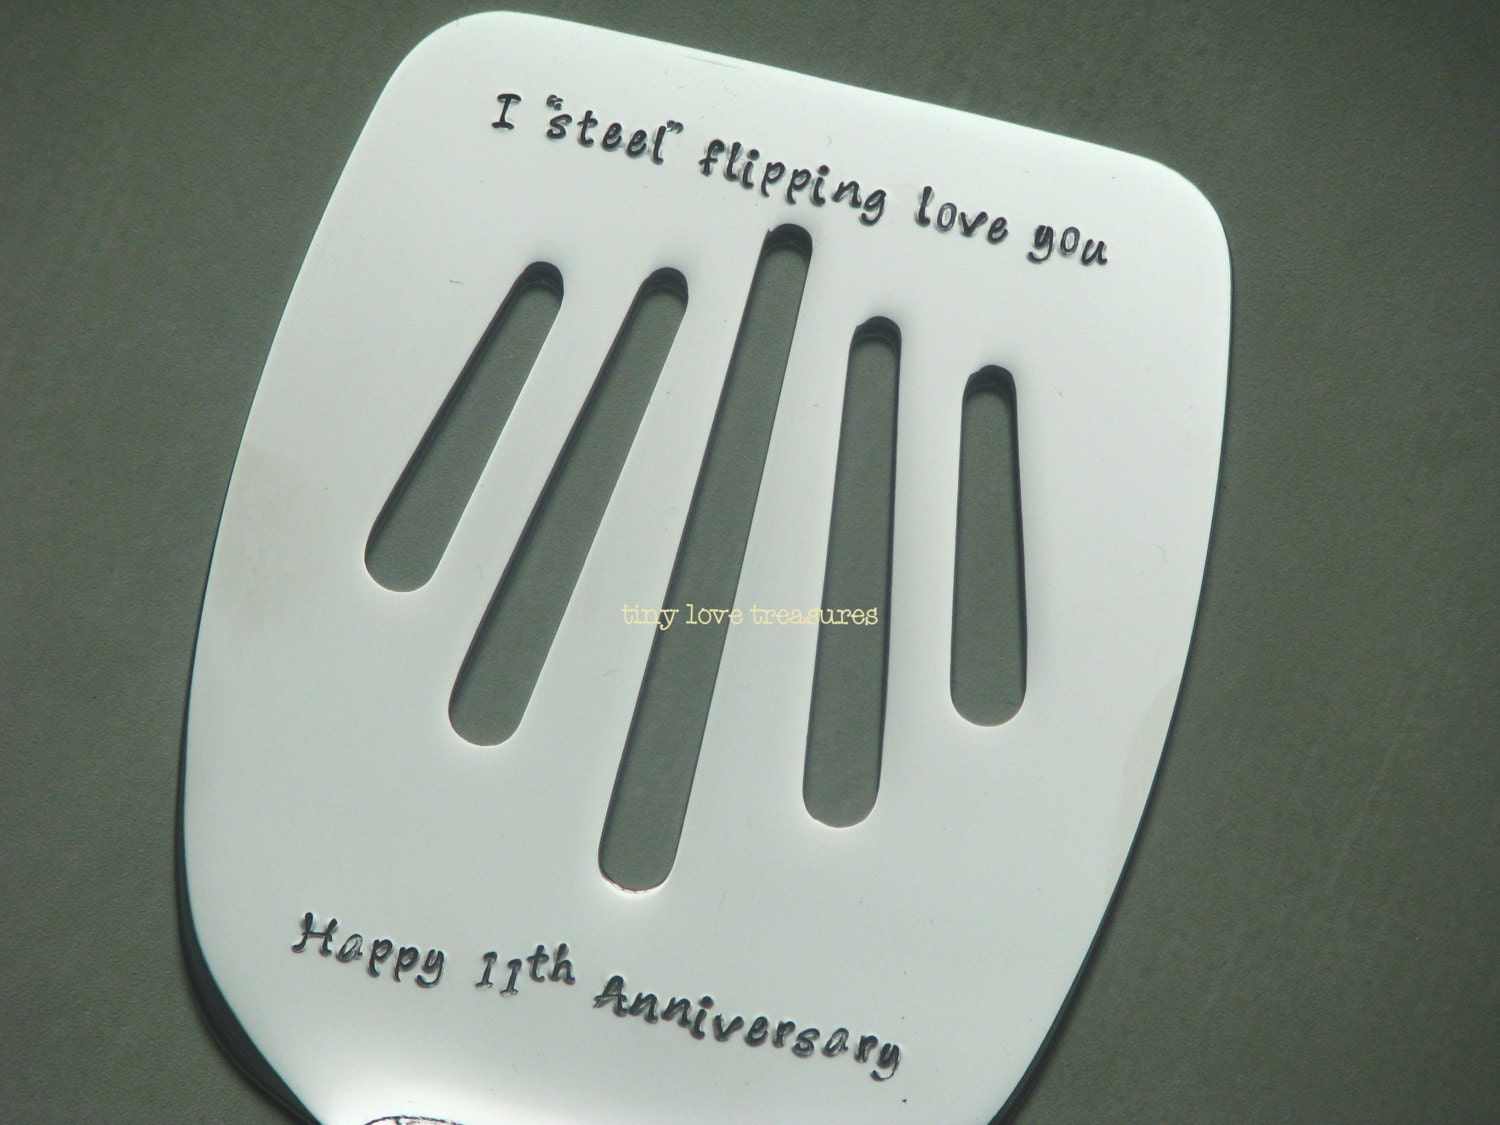 I Steel Flipping Love You 11th Anniversary Personalized